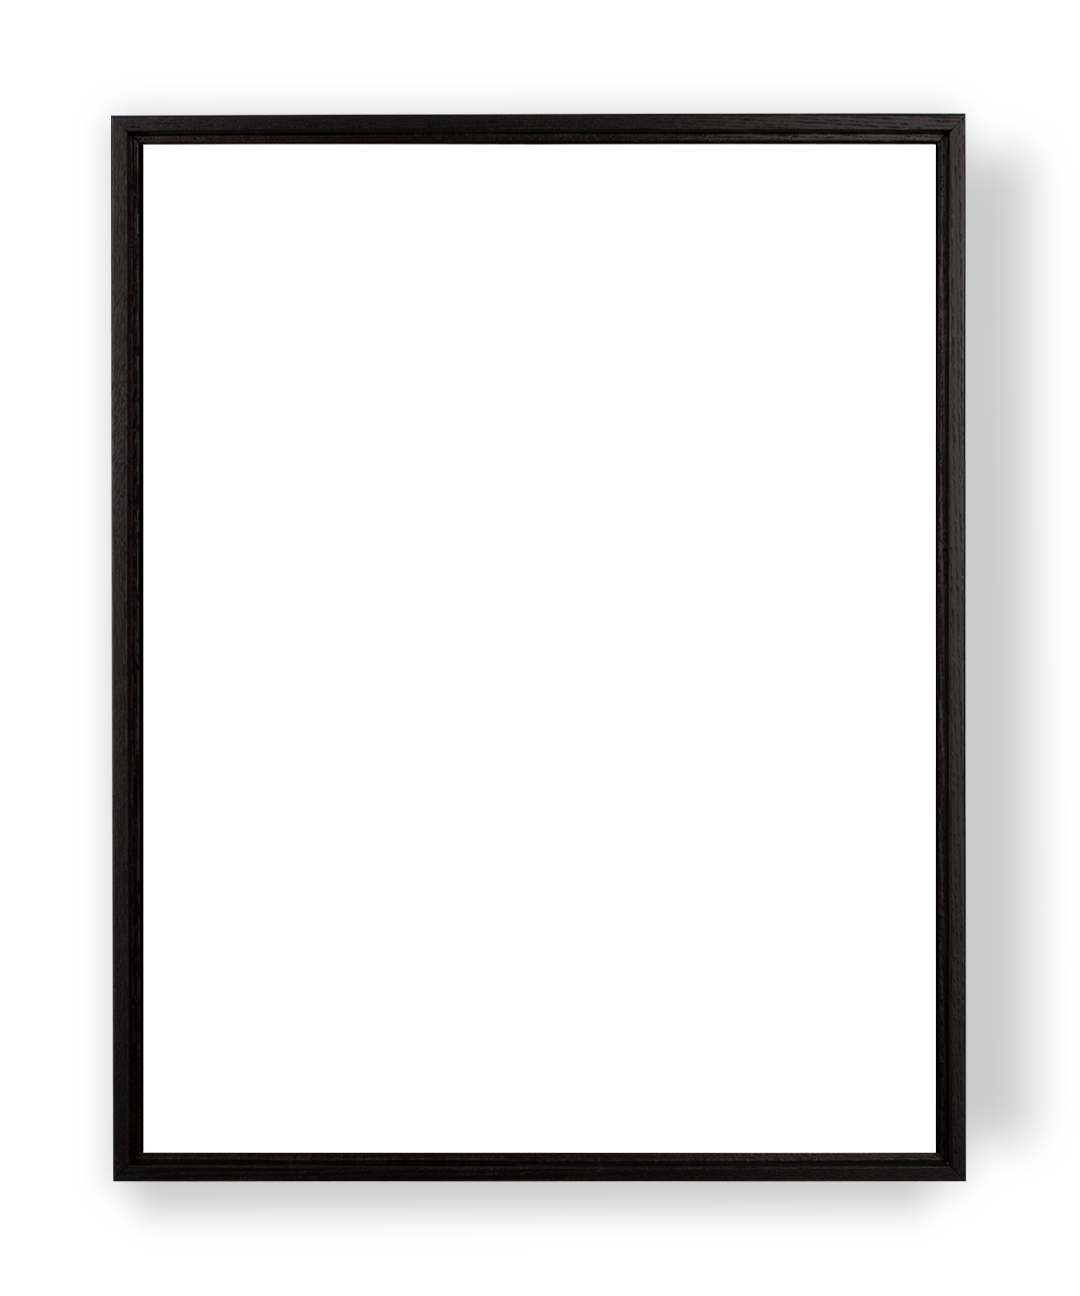 Framed Collage Canvas Print, Black, 11x14 | Collage Canvas Prints ...